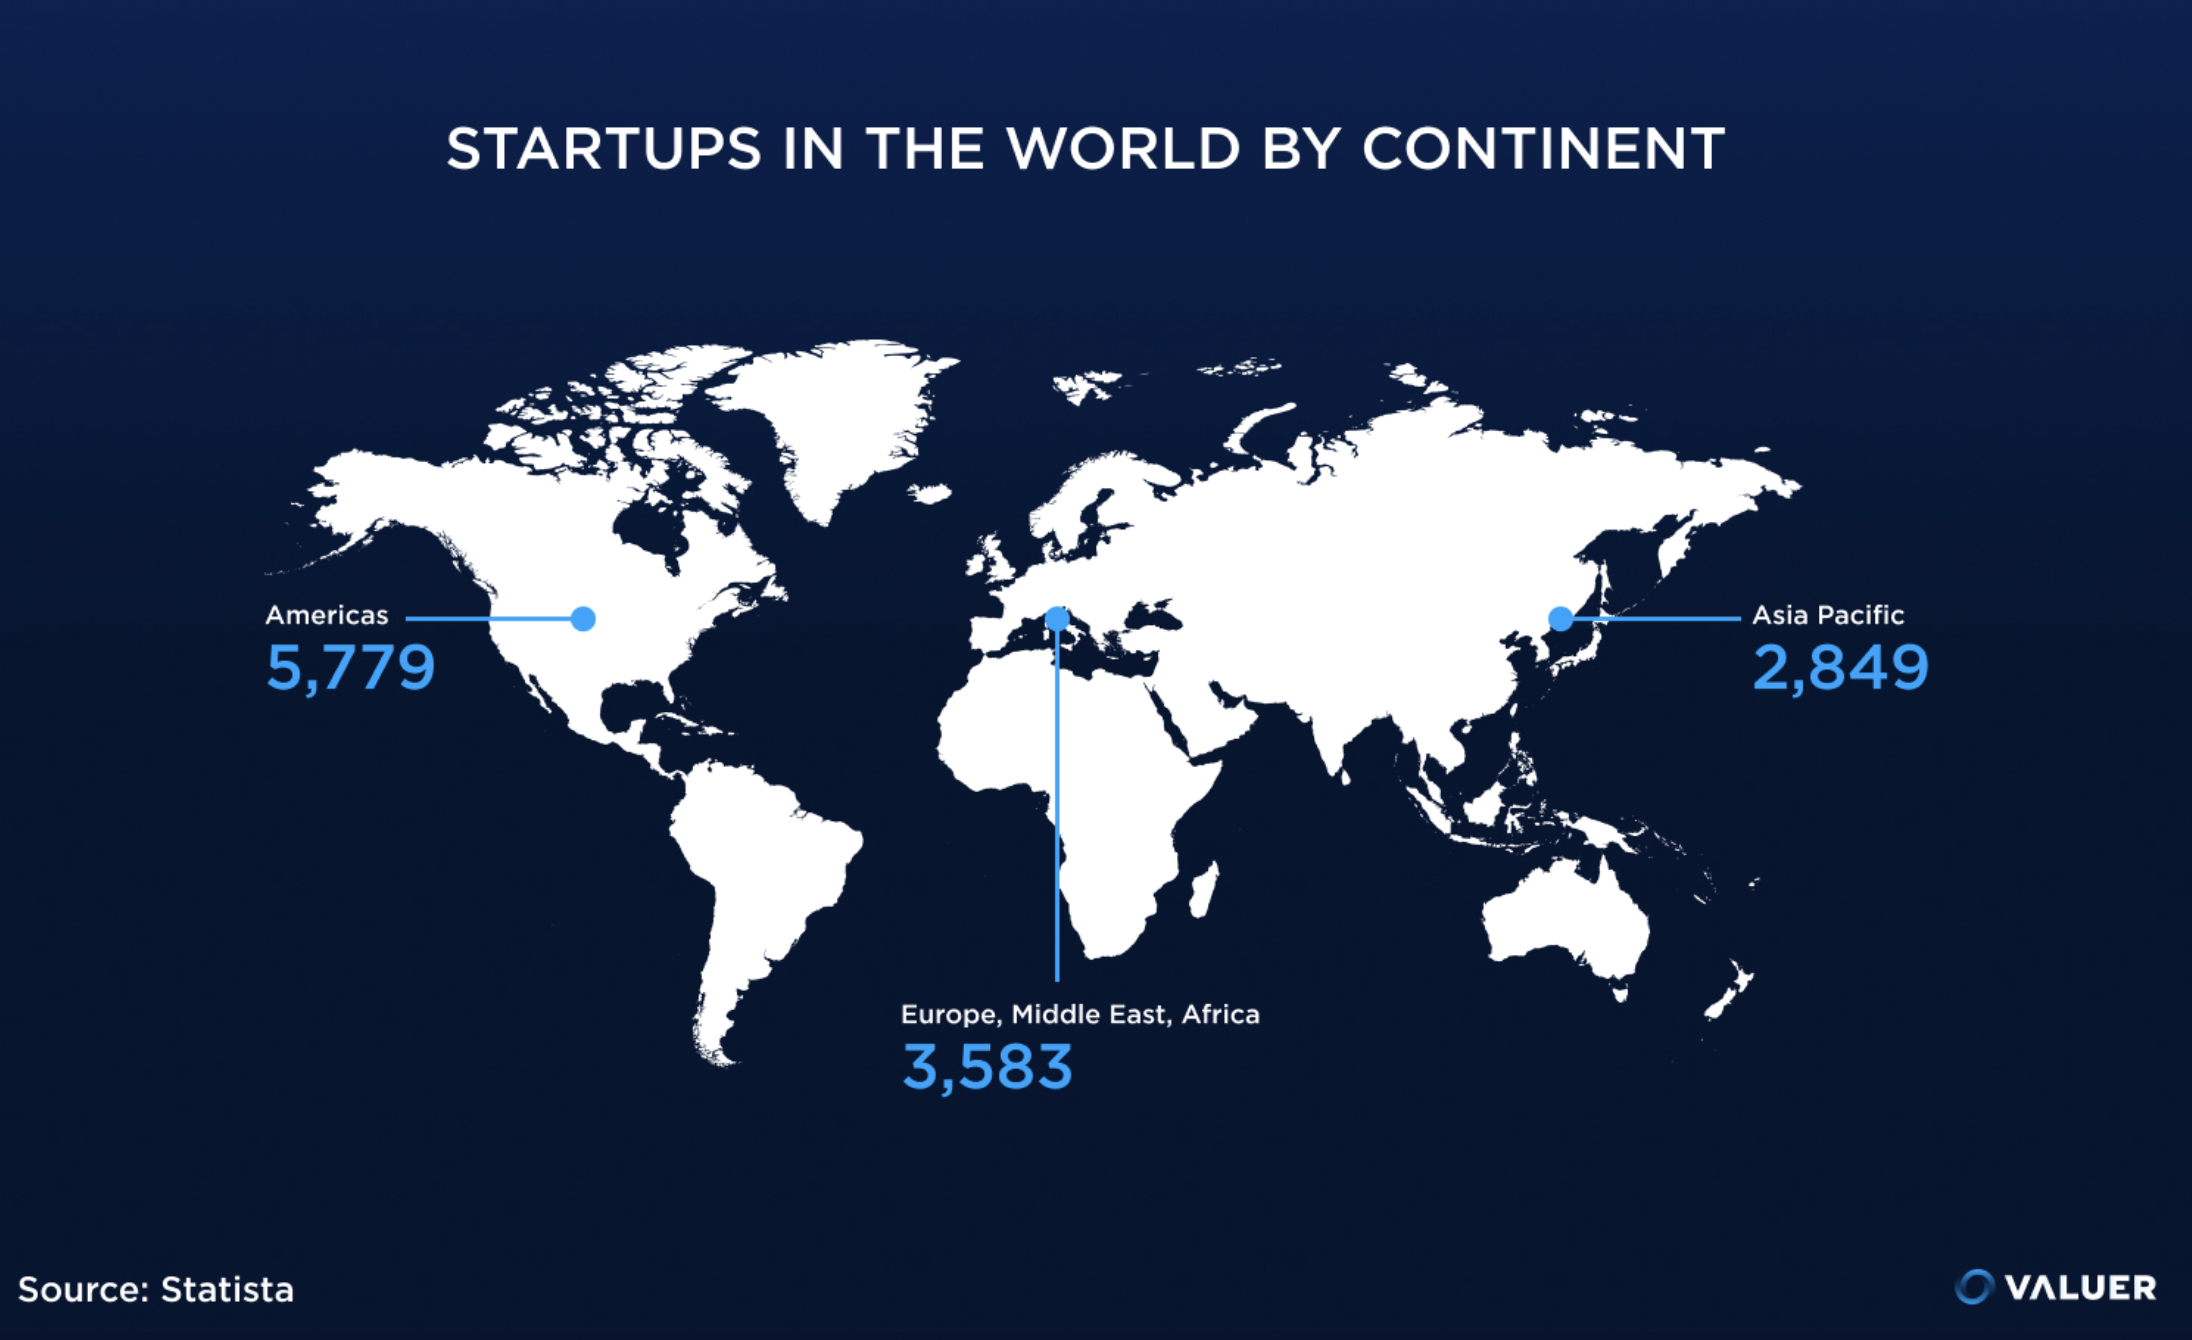 Startups in the world by continent